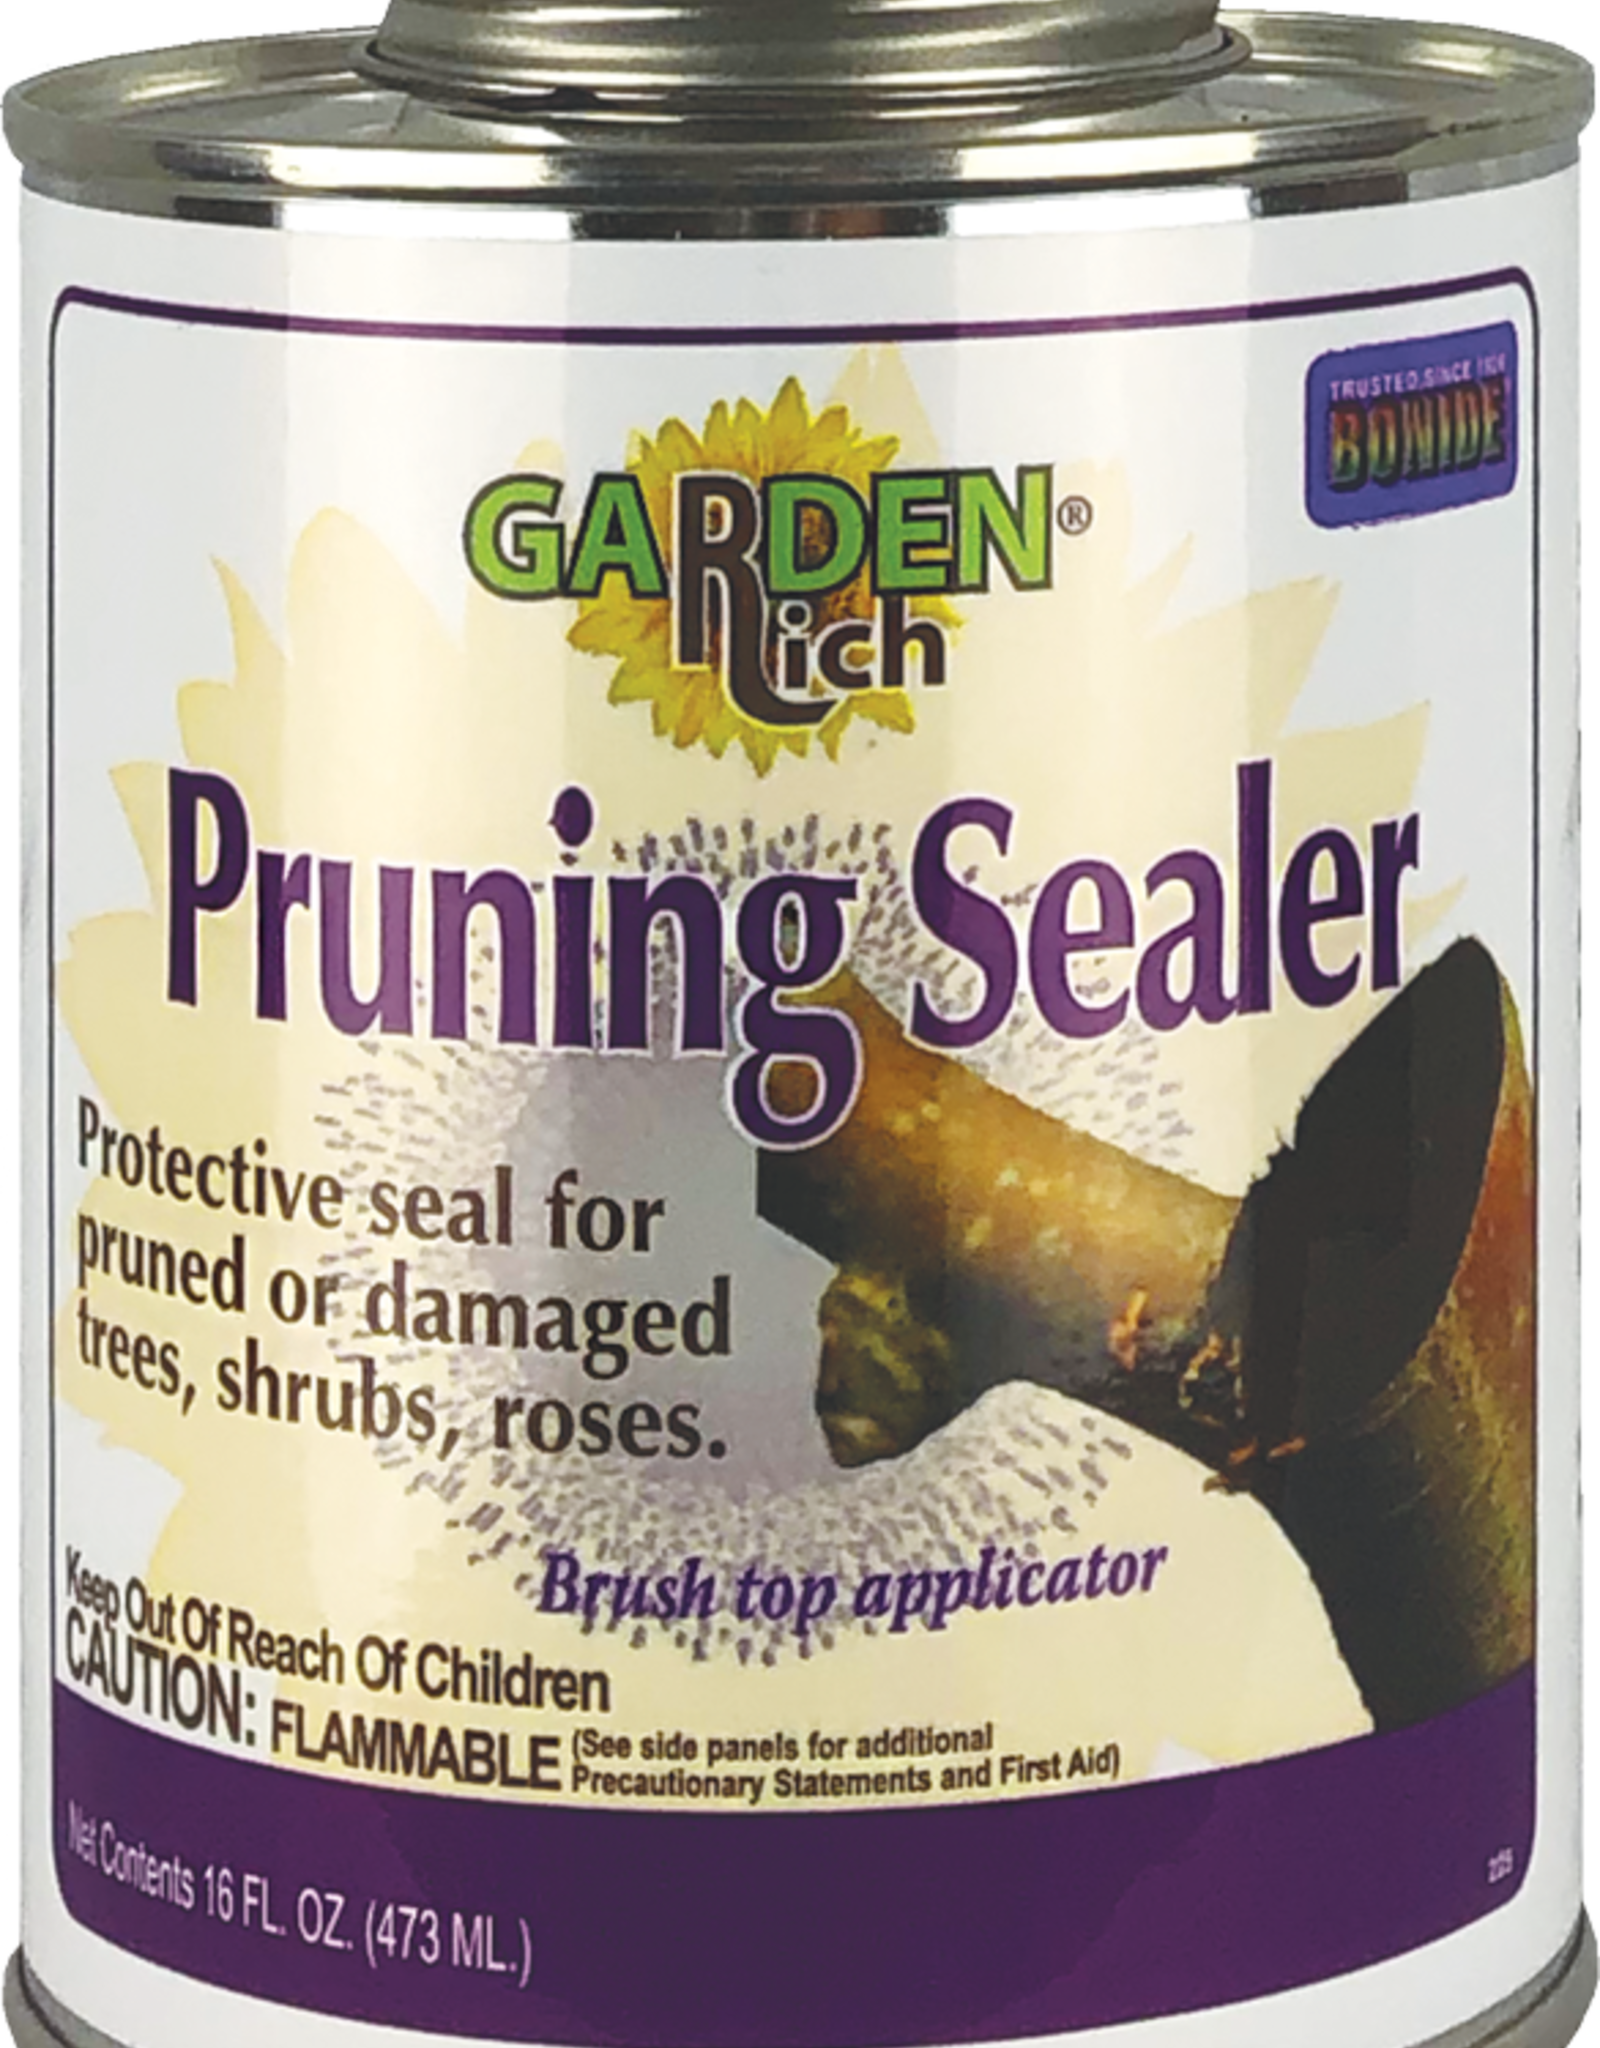 BONIDE PRODUCTS INC     P BONIDE PRUNING SEALER W/APPLICATOR 16OZ